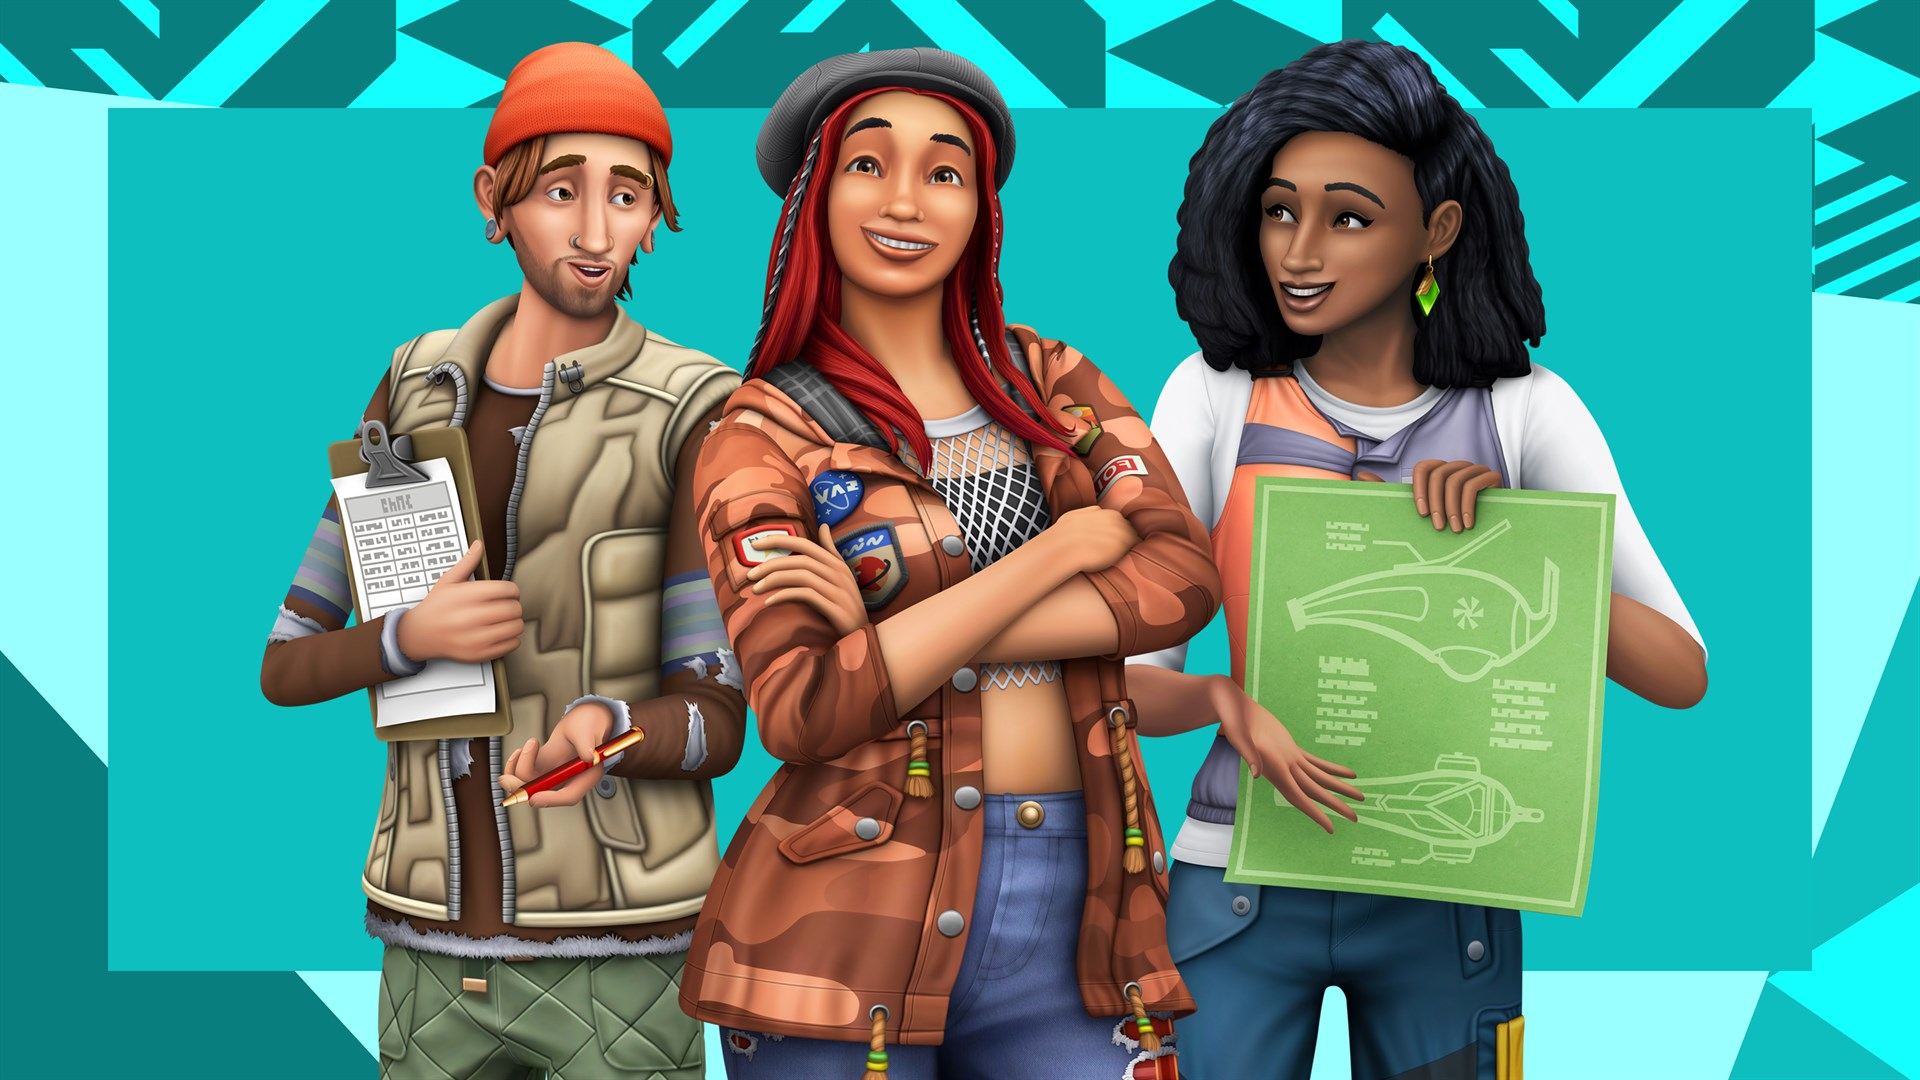 Sims 4 Goes Green with Eco Lifestyle Expansion Pack